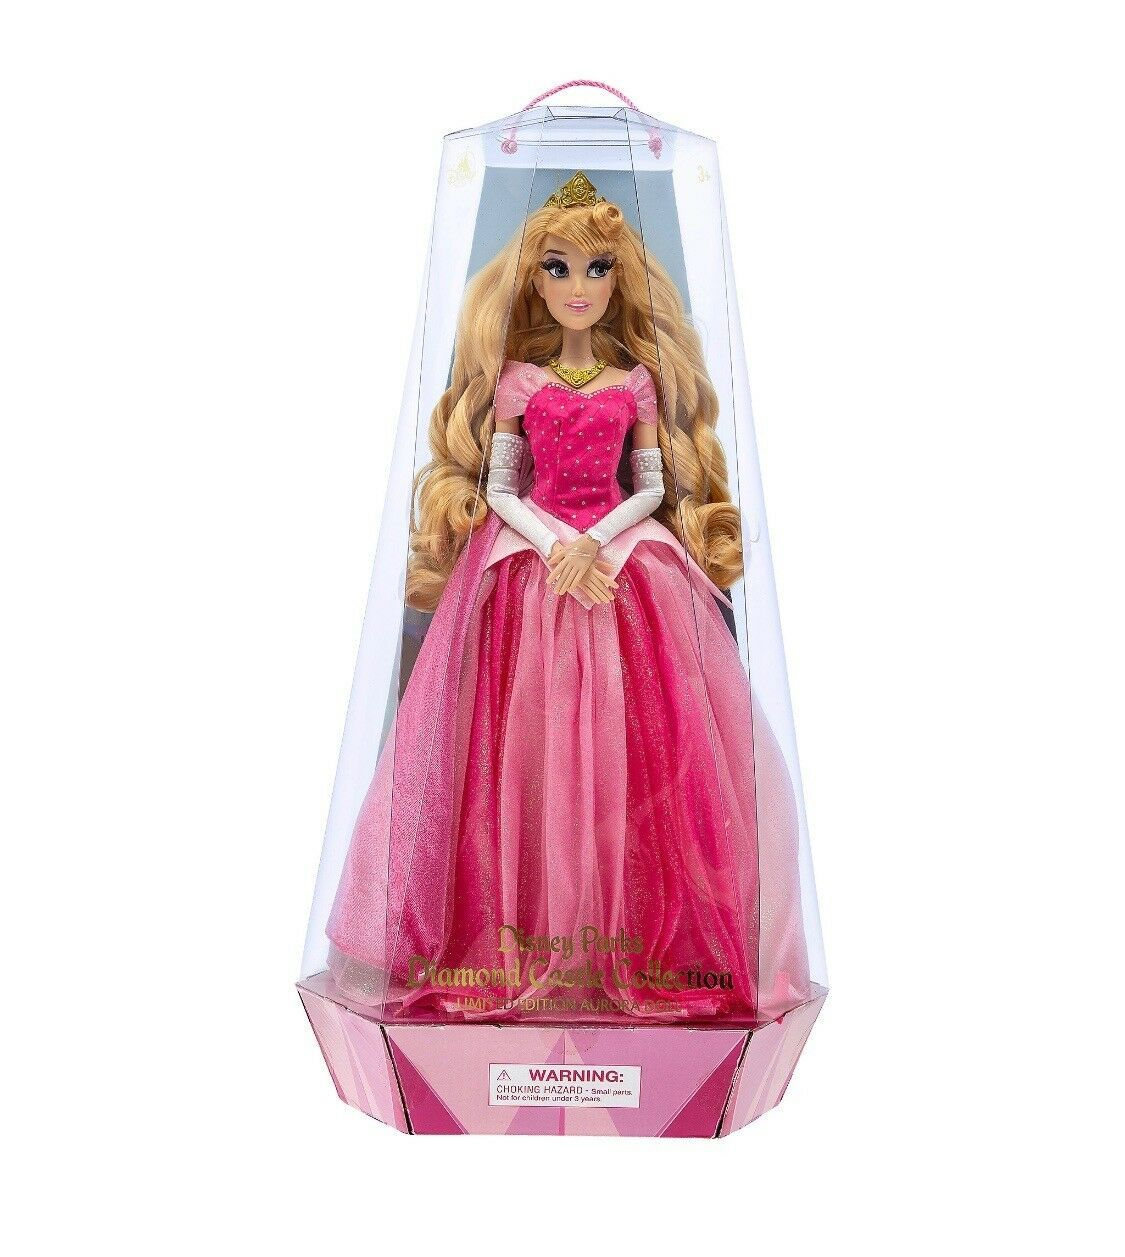 Disney Parks Sleeping Beauty 60th Aurora Limited Doll New with Box